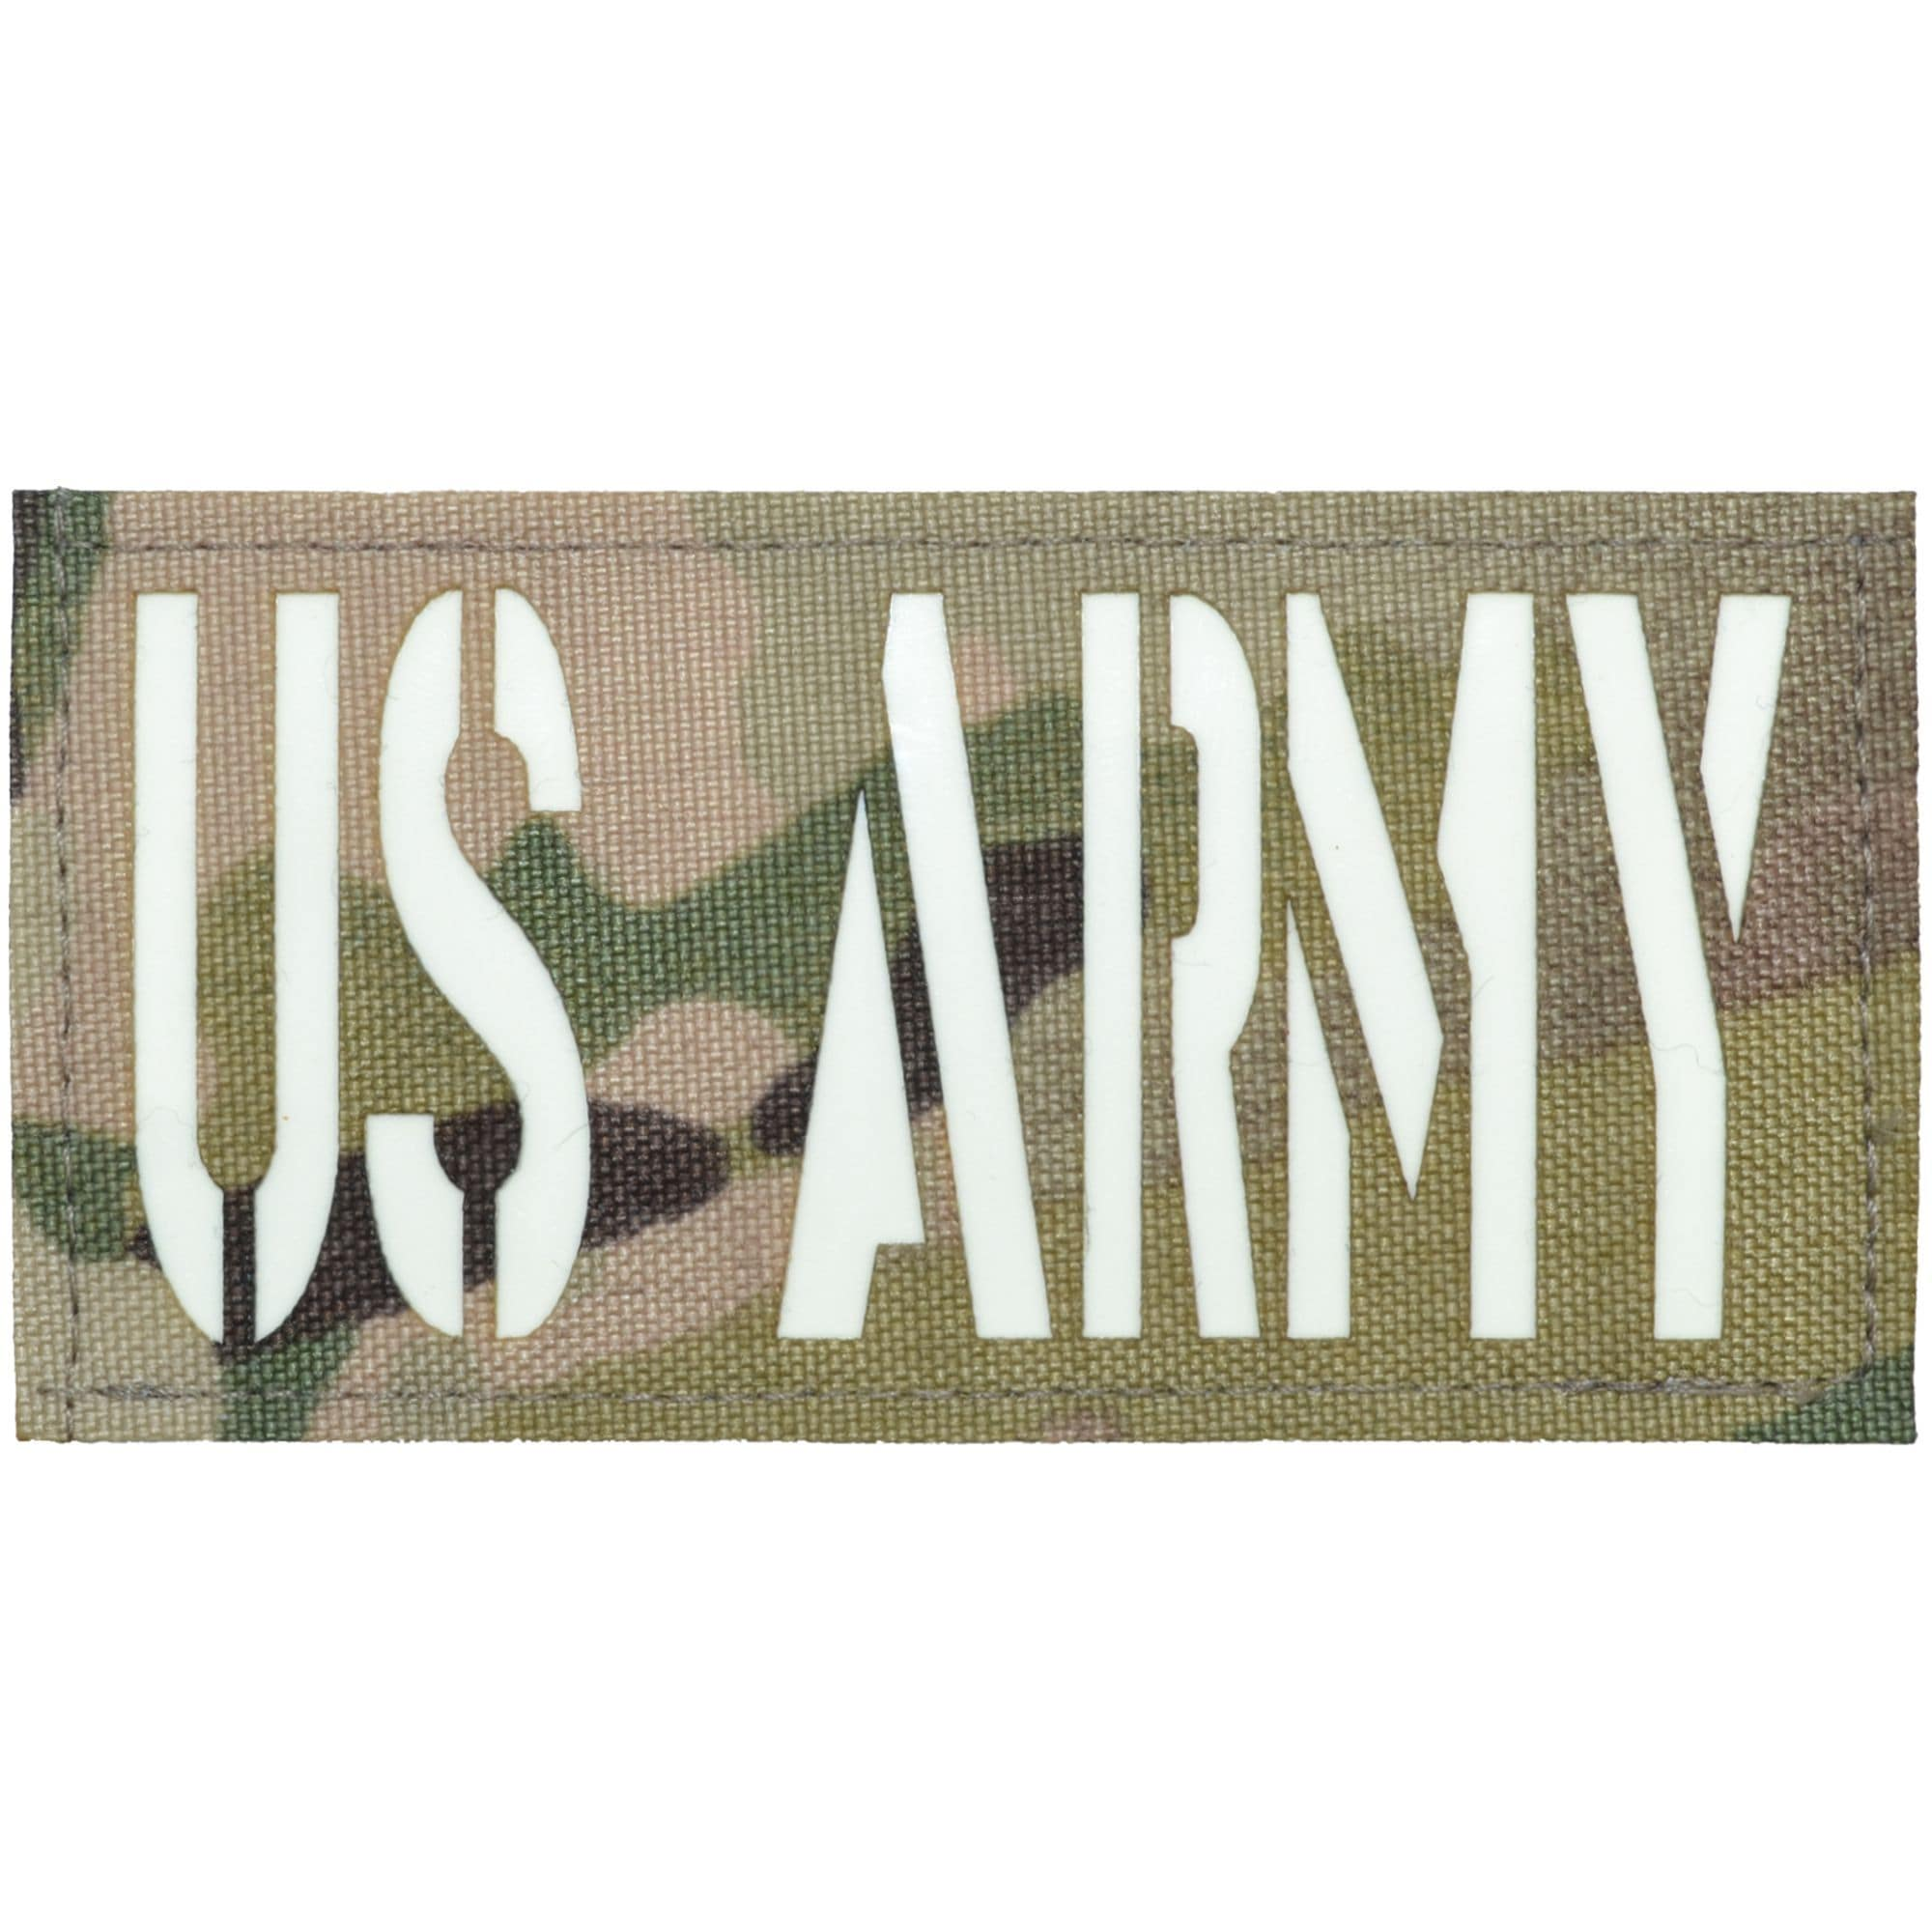 US Army Laser Cut Reflective - 2x4 CORDURA® Patch